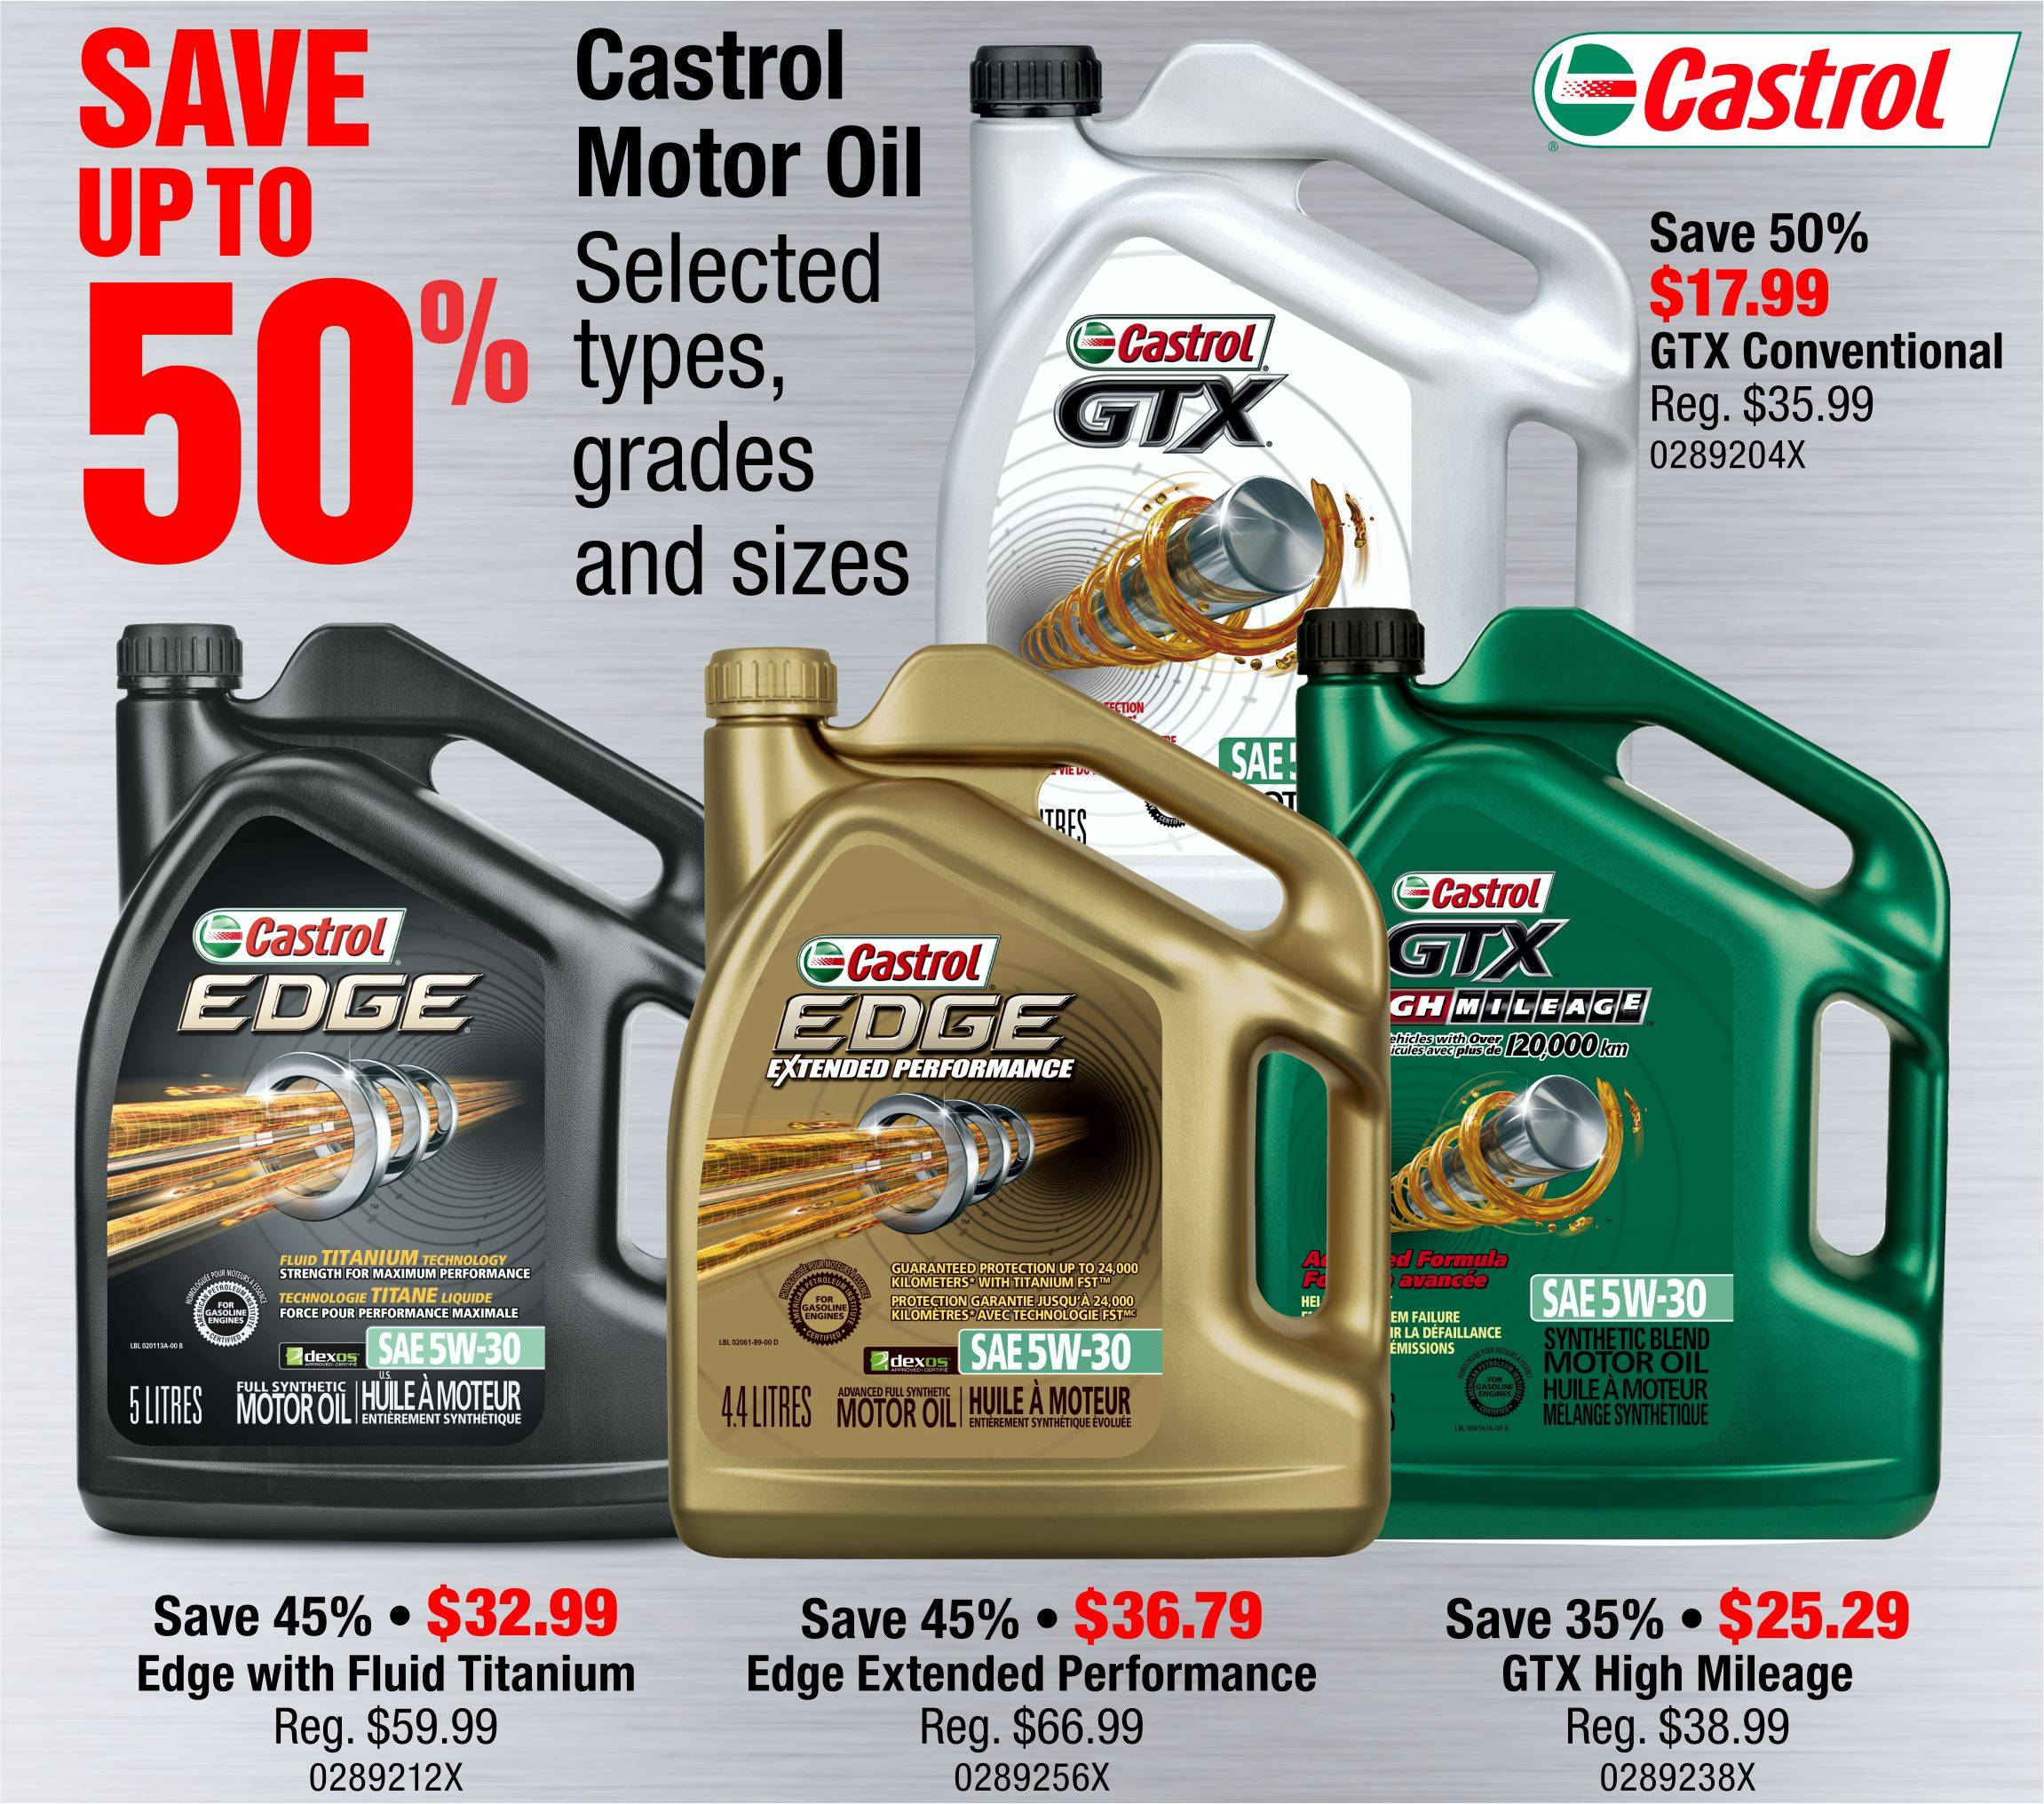 Save up to 50% on Castrol Motor Oil